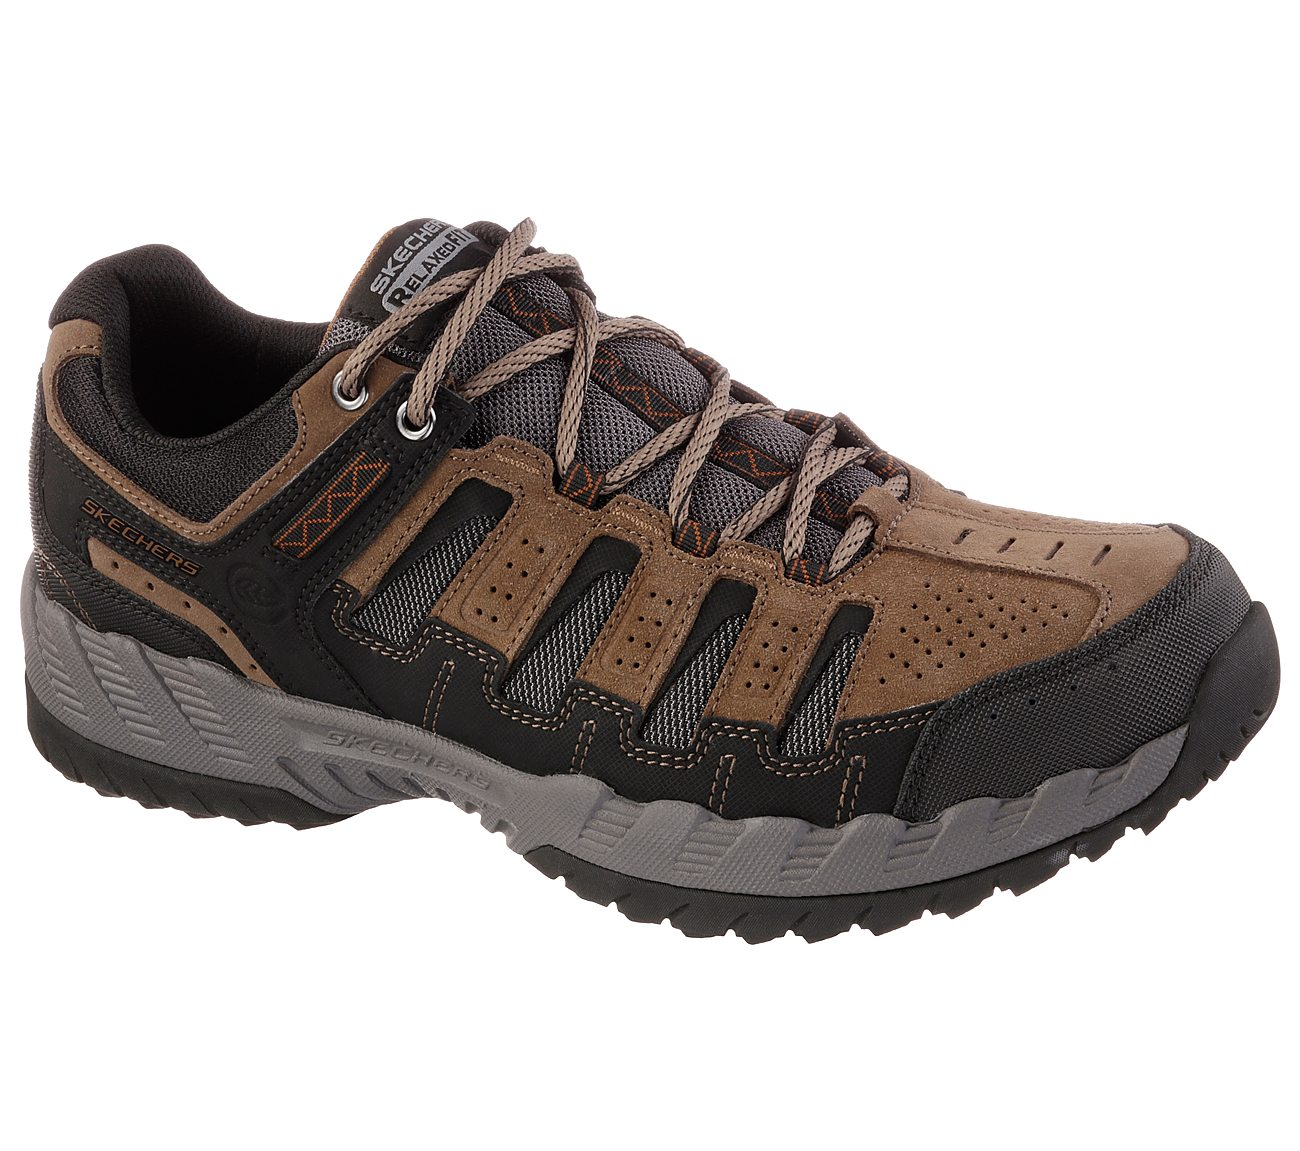 Skechers Shoes  Skechers Thrill Seeker Relaxed 51384 Mens Sports Shoes BrownBlack